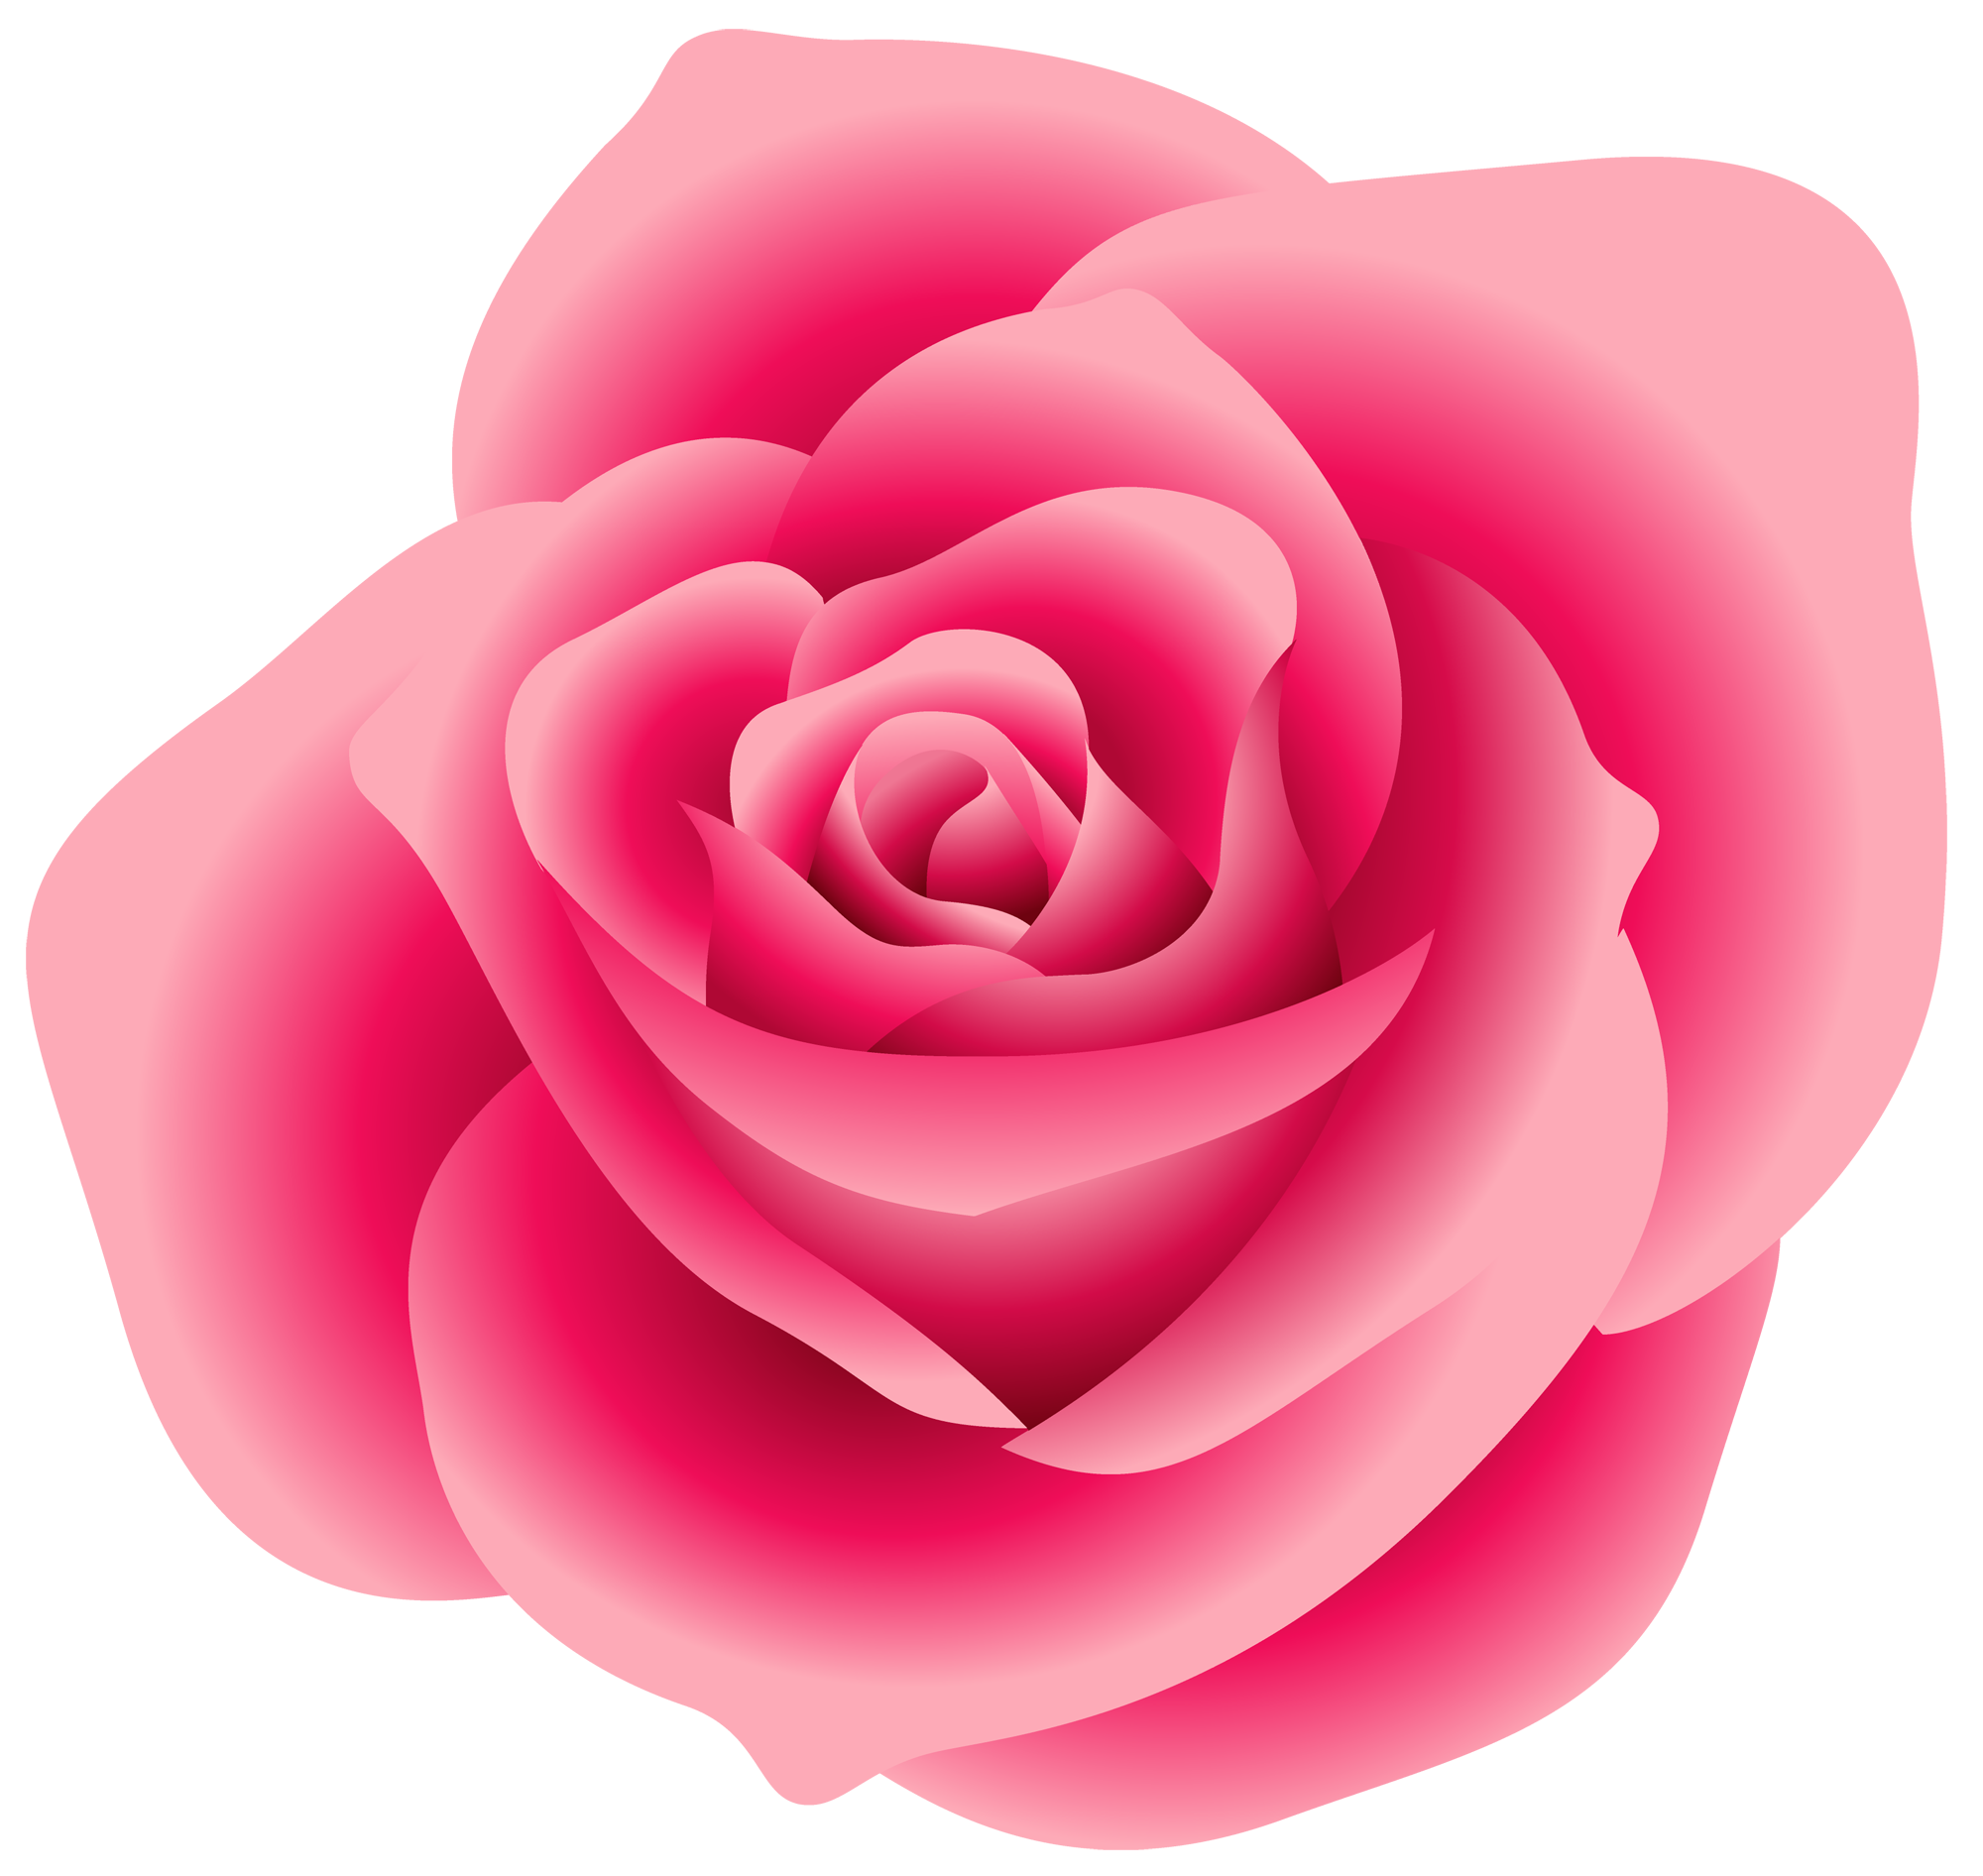 Pink color rose clipart.